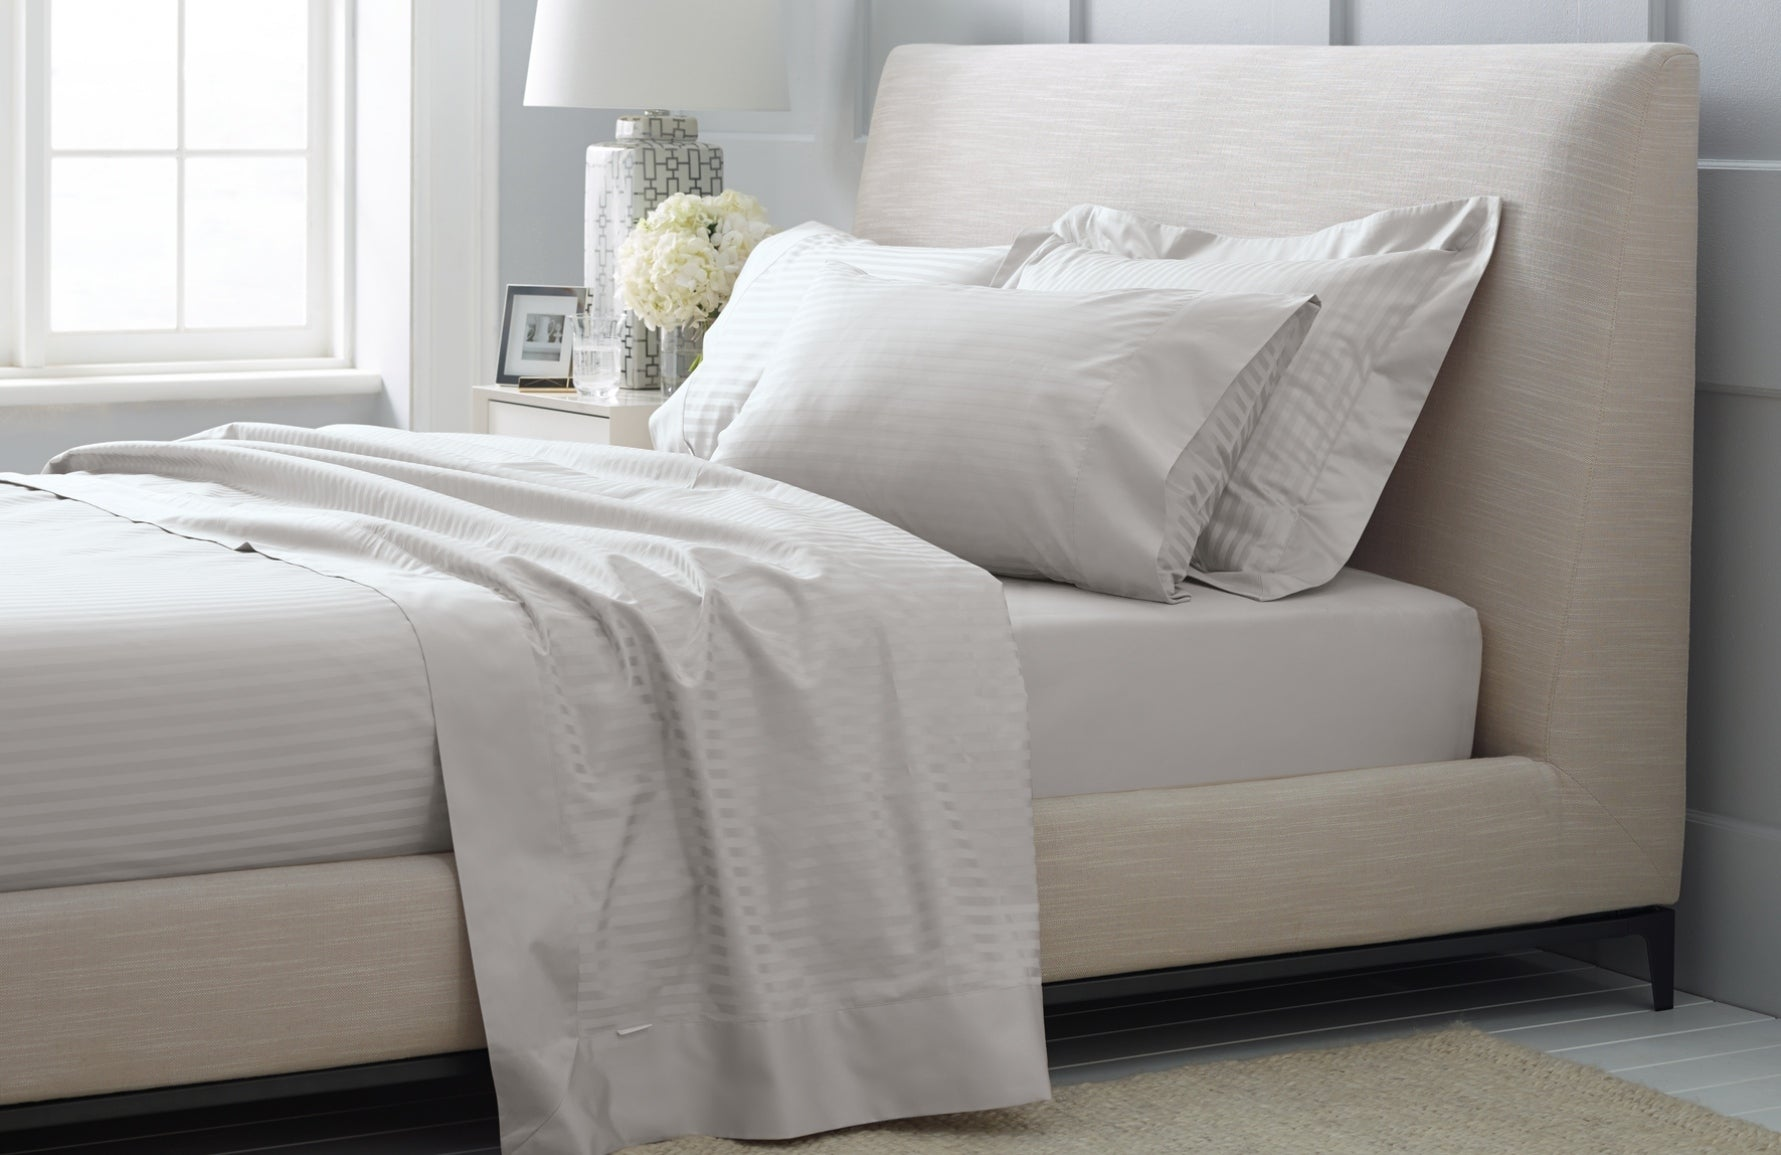 How To Choose The Best Bedding Type For Your Bed Luxdeco,Old House Renovation Before And After In India